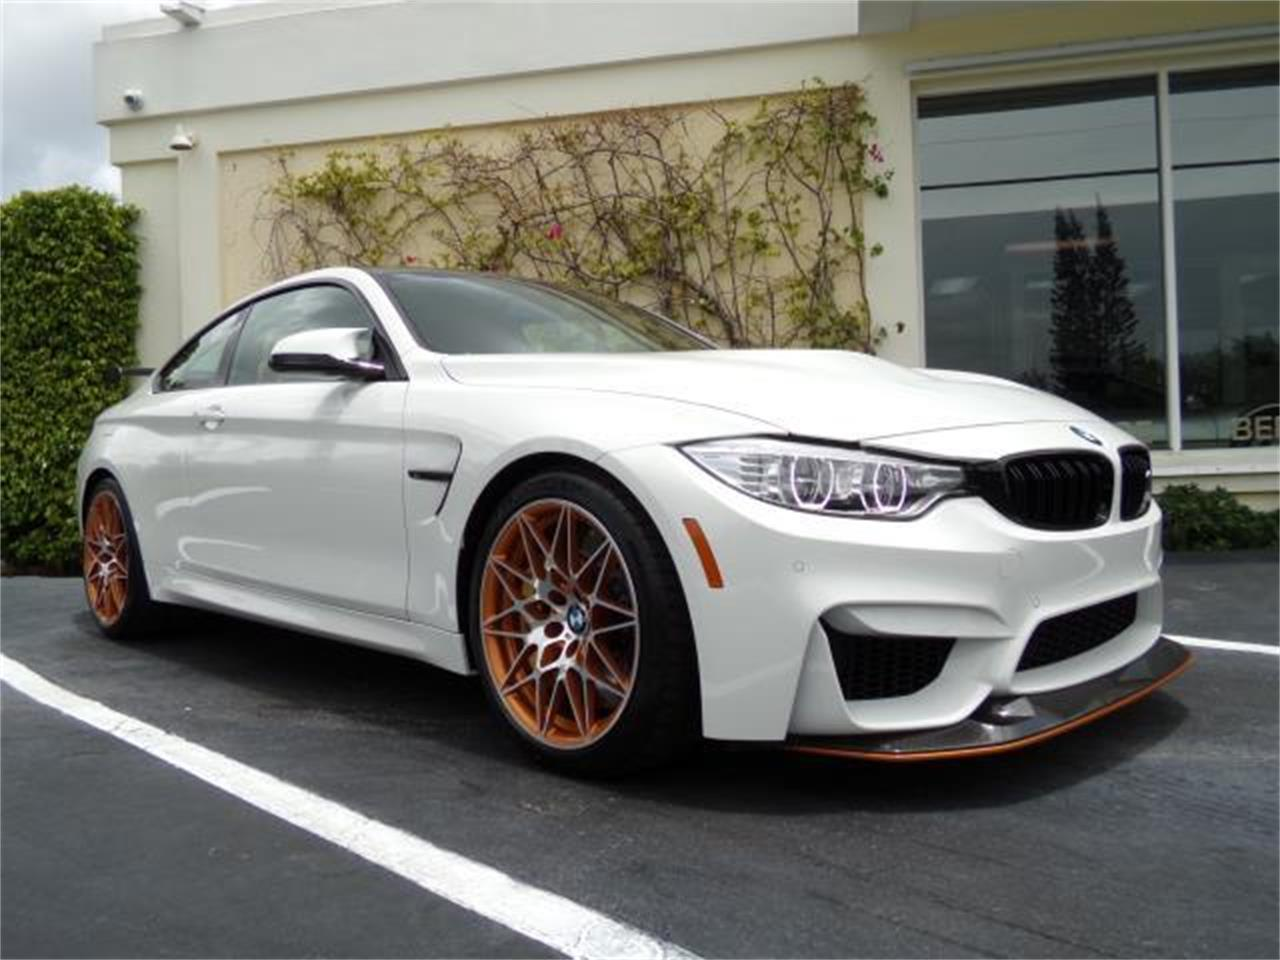 Bmw M4 Gts For Sale >> 2016 Bmw M4 Gts For Sale Classiccars Com Cc 988960